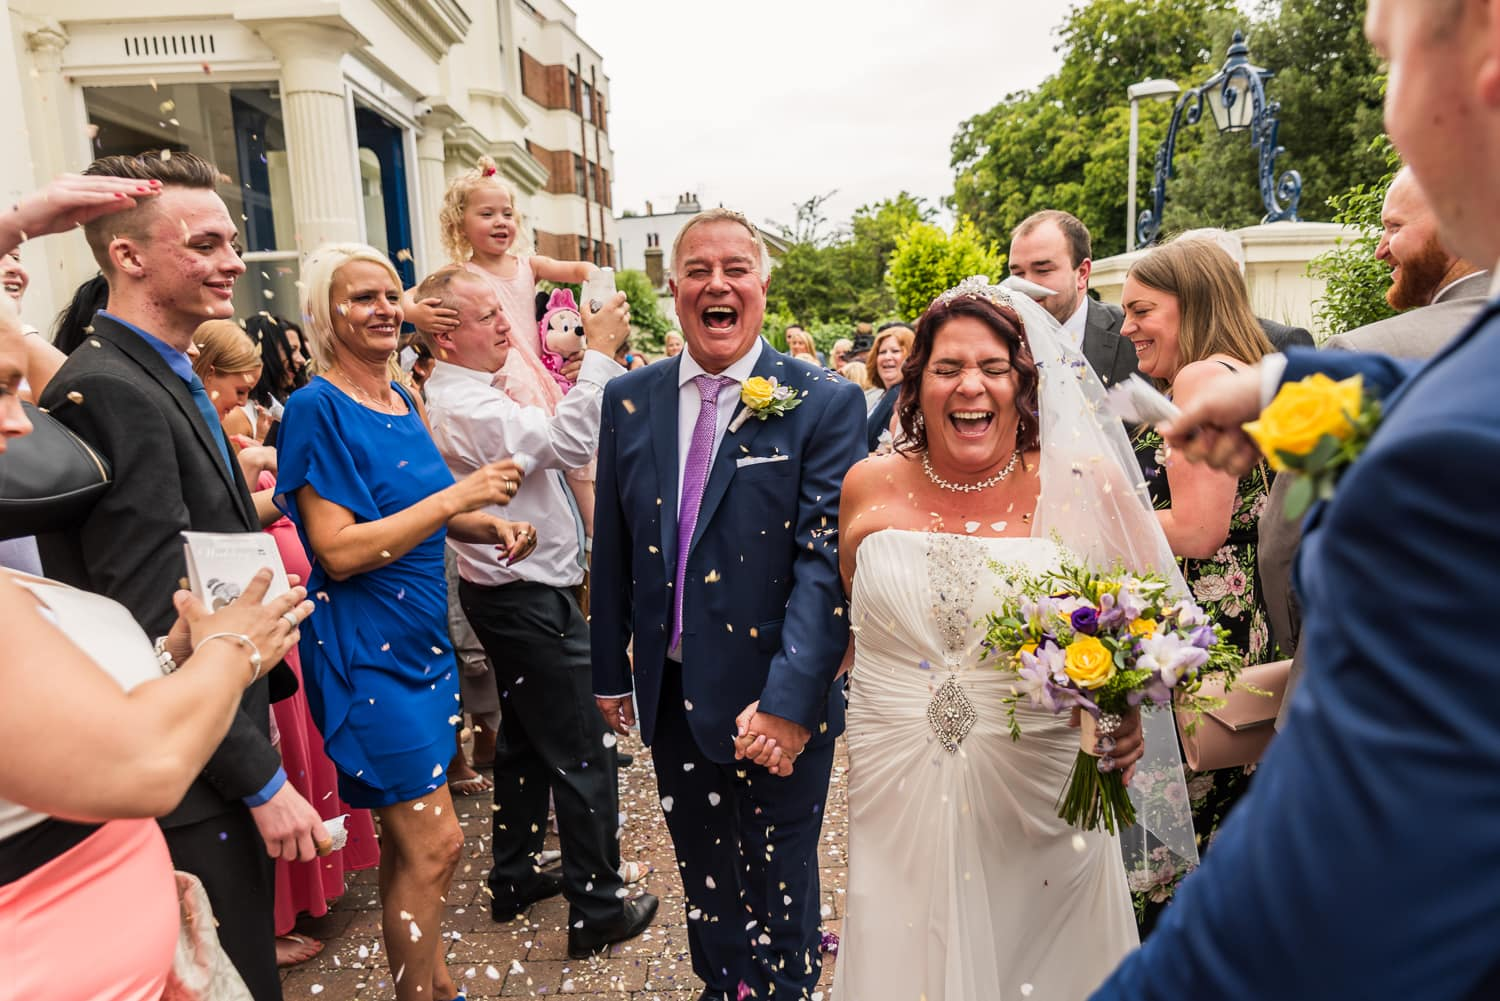 newlyweds celebrating with confetti after beautiful ceremony